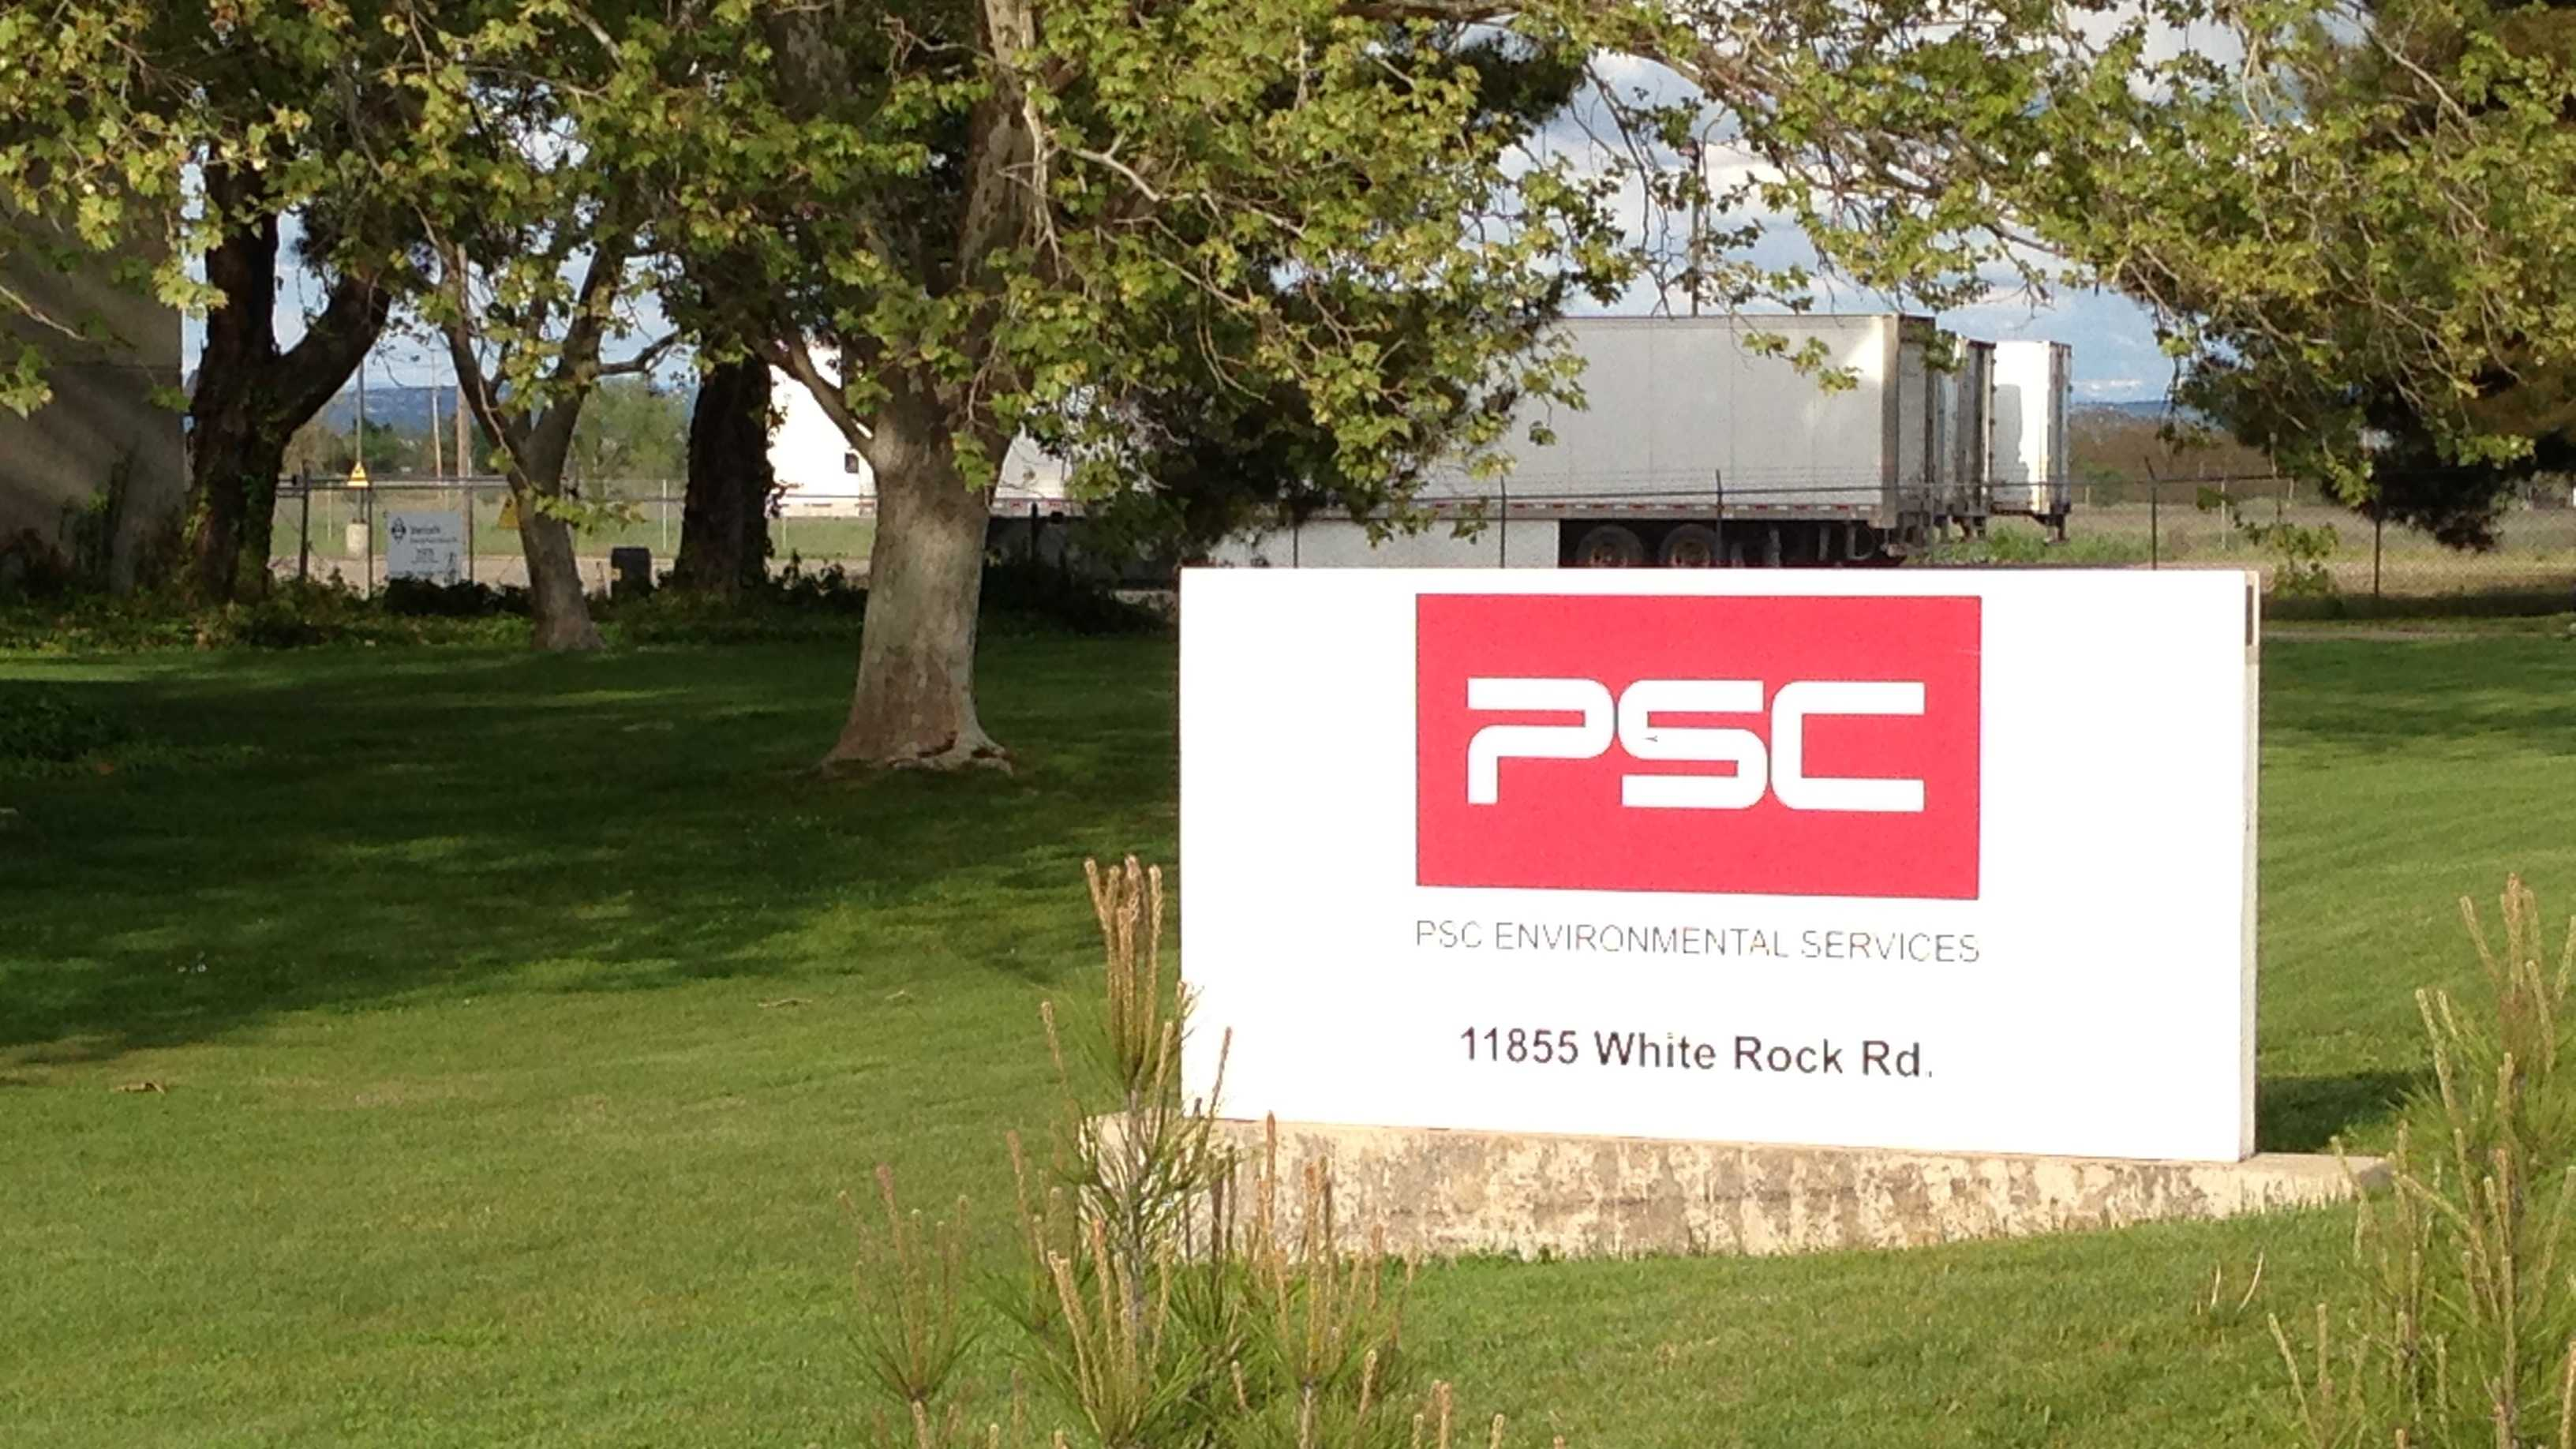 PSC Environmental Services